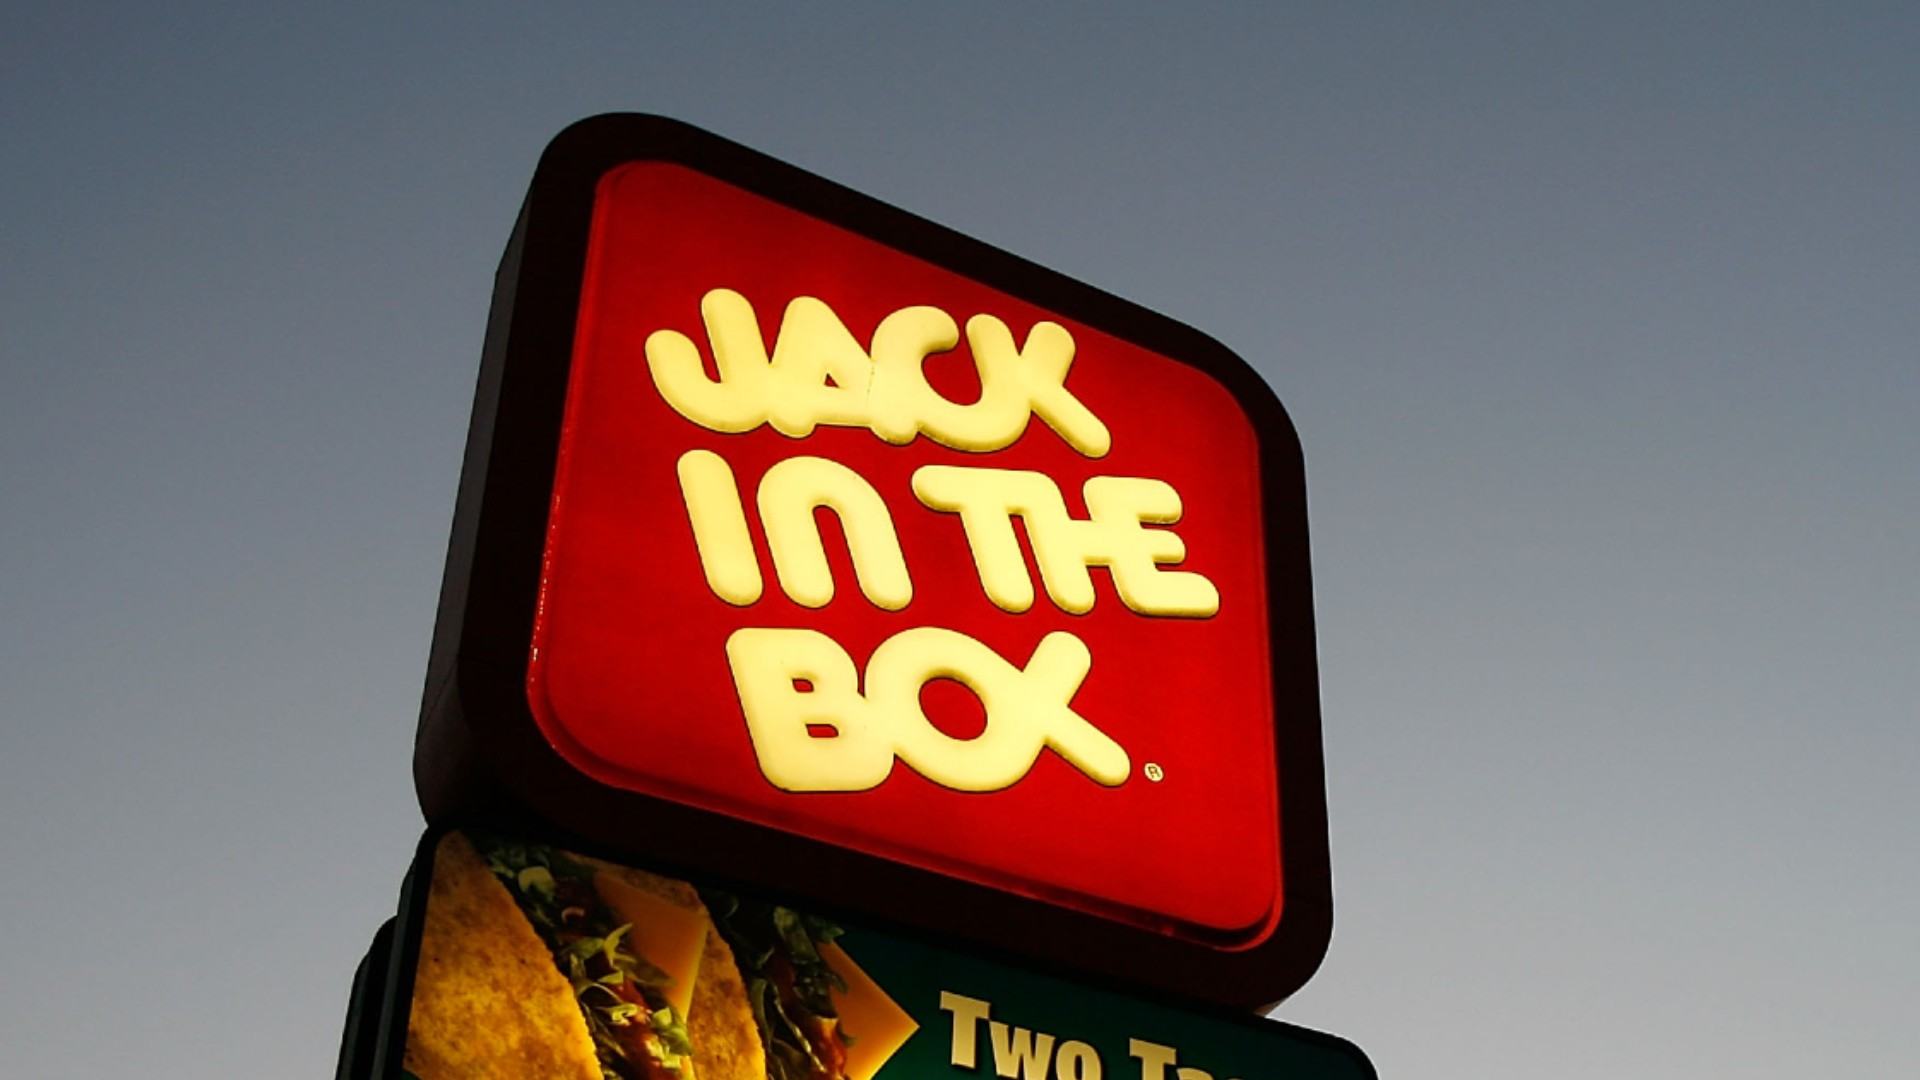 A Jack in the Box sign is seen in a file photo. (David McNew/Getty Images)